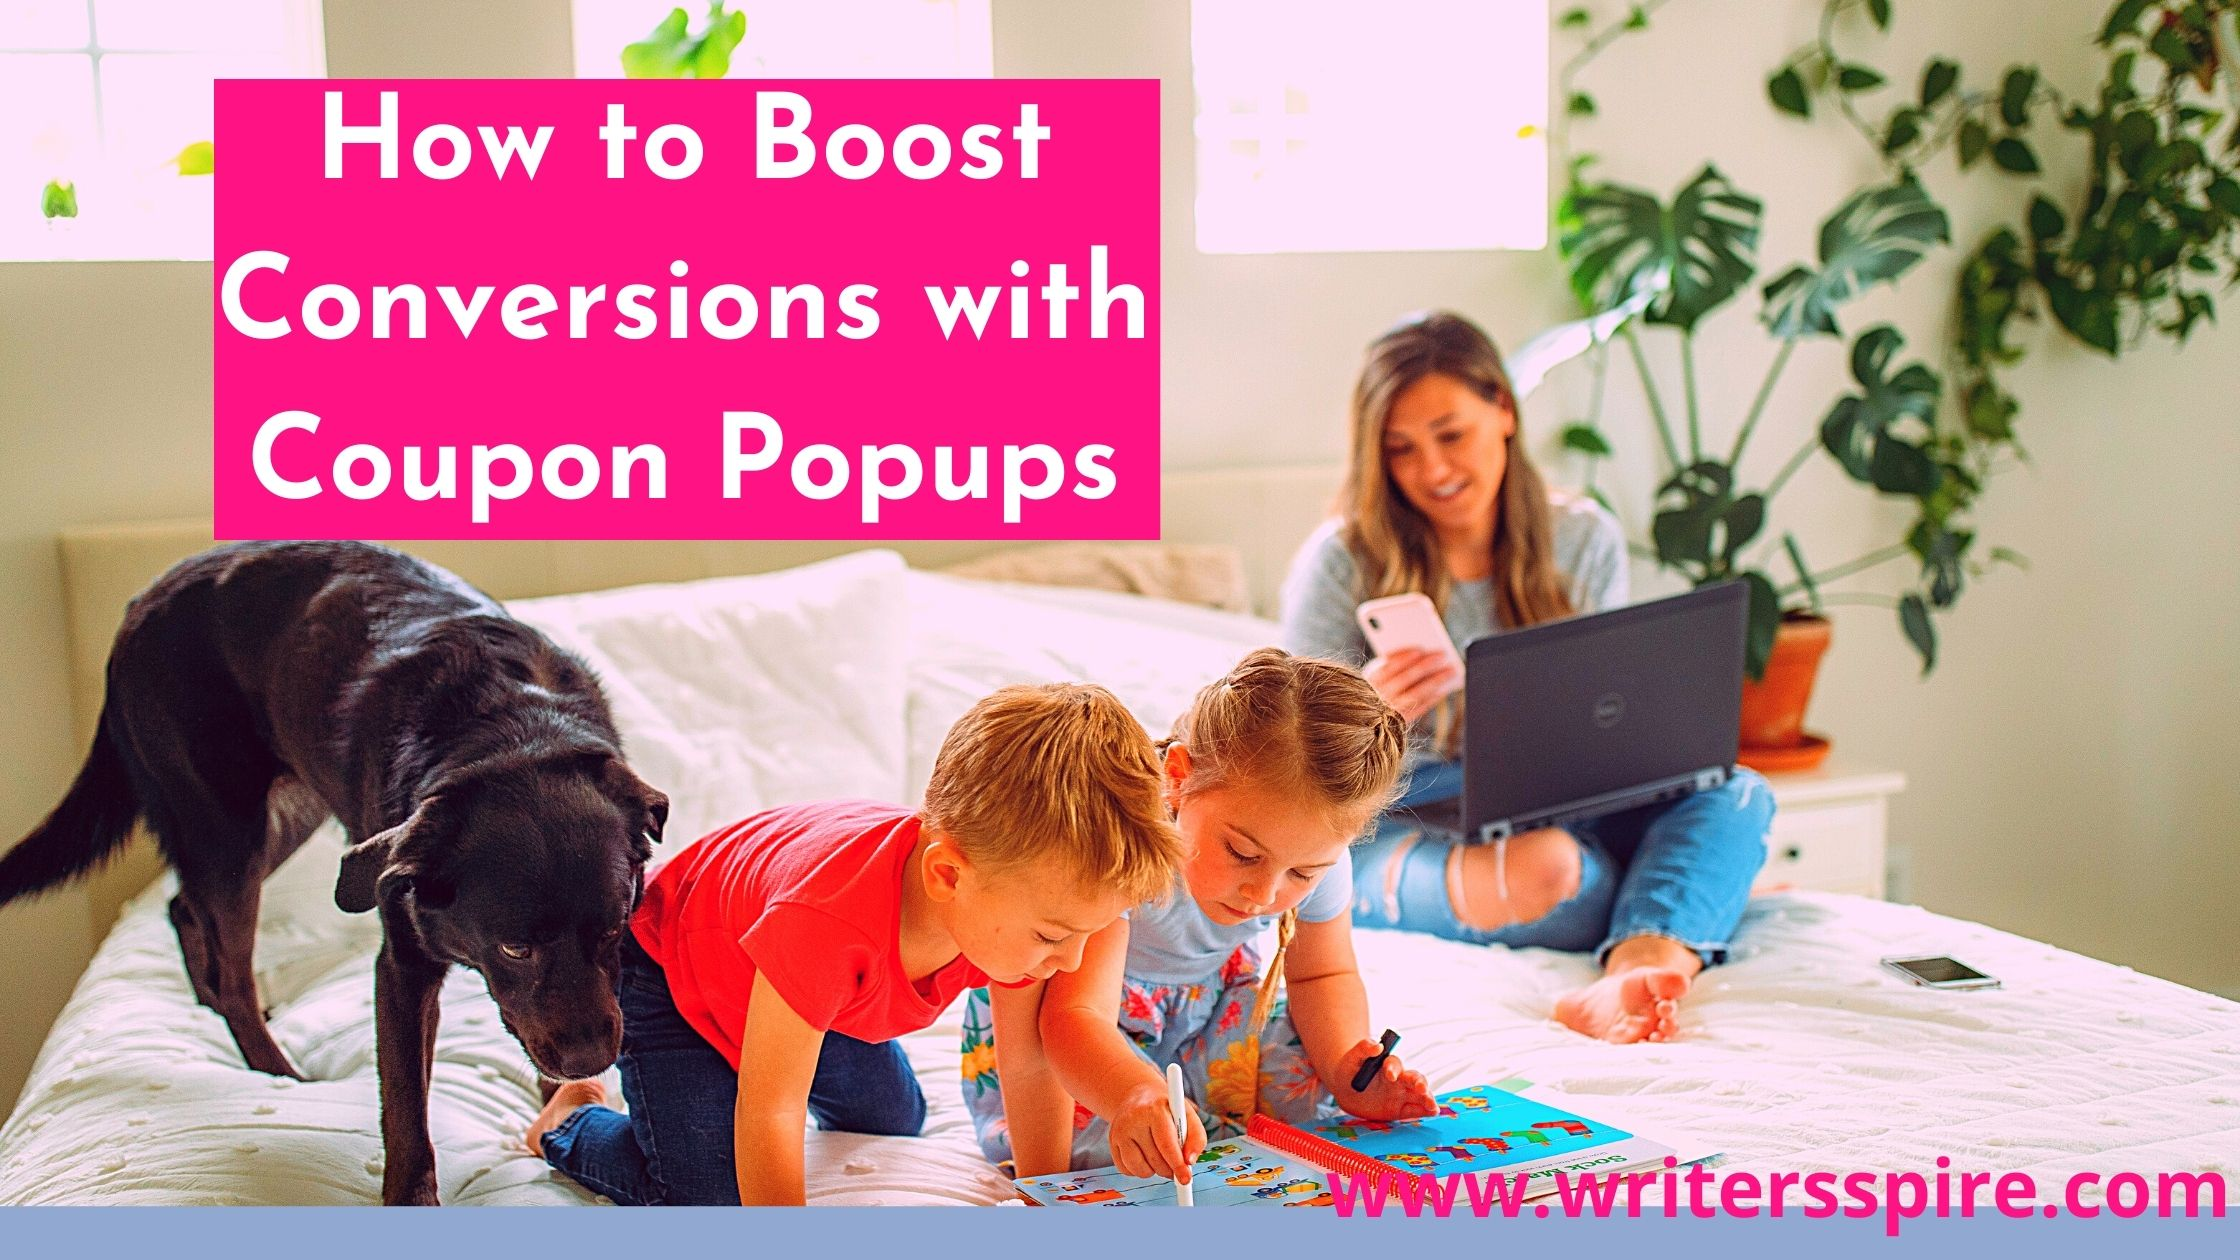 How to Boost Conversions with Coupon Popups